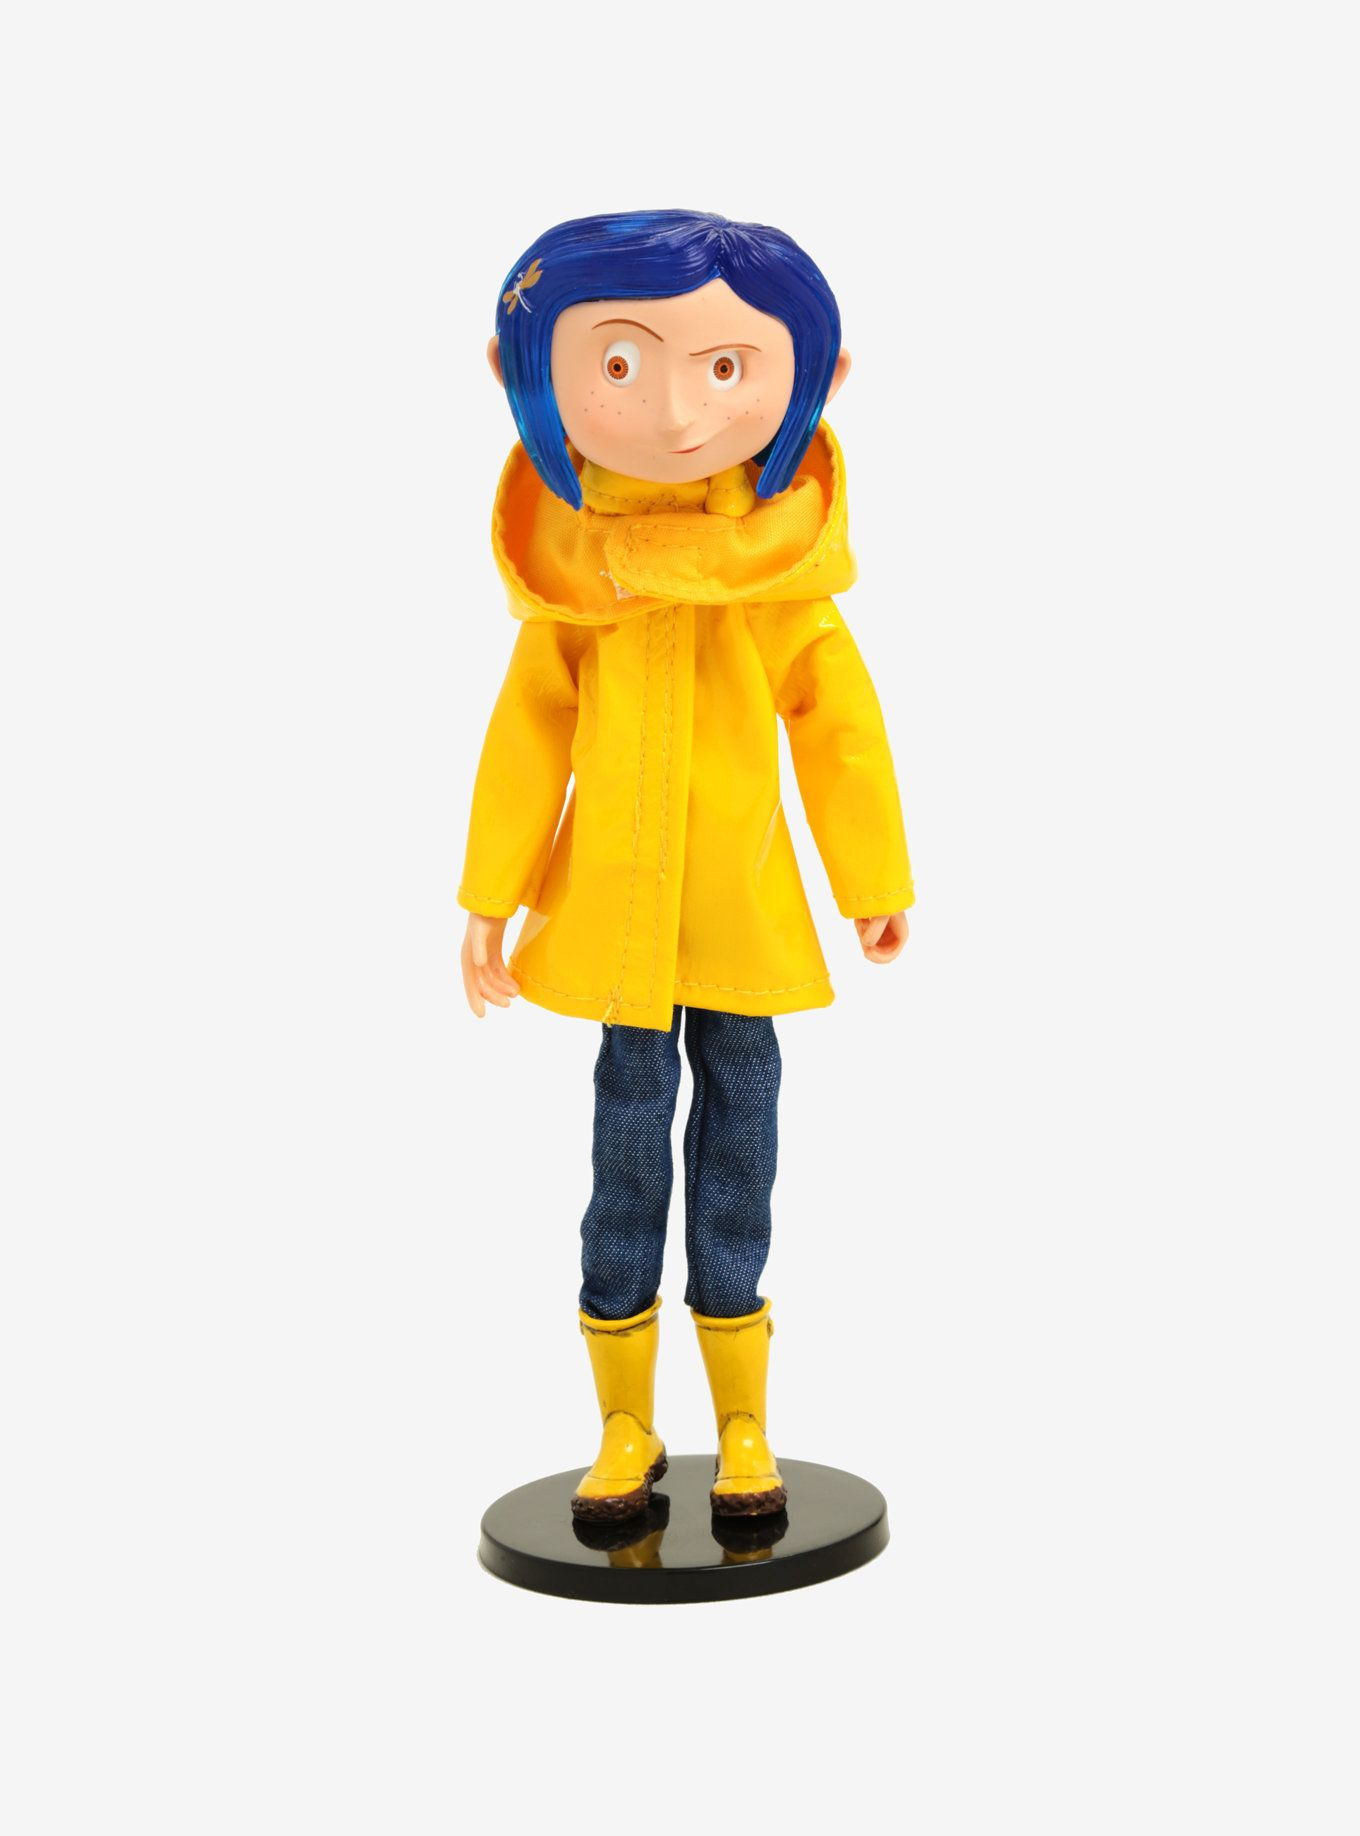 Images about laika stuff on pinterest coraline